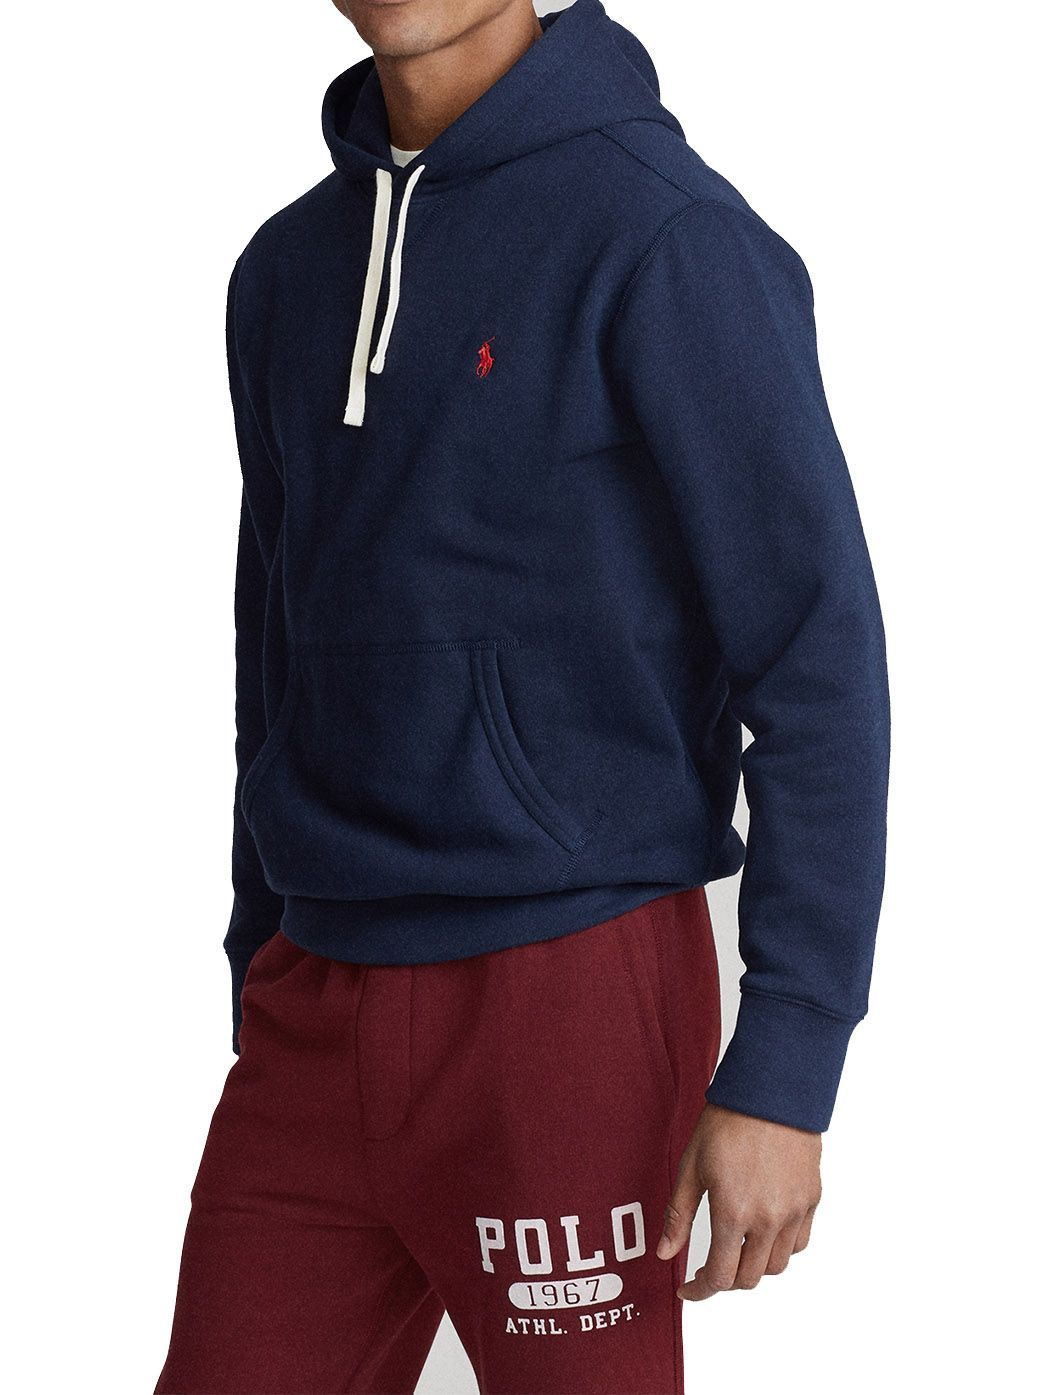 RALPH LAUREN MEN'S 710766778007 BLUE COTTON SWEATSHIRT